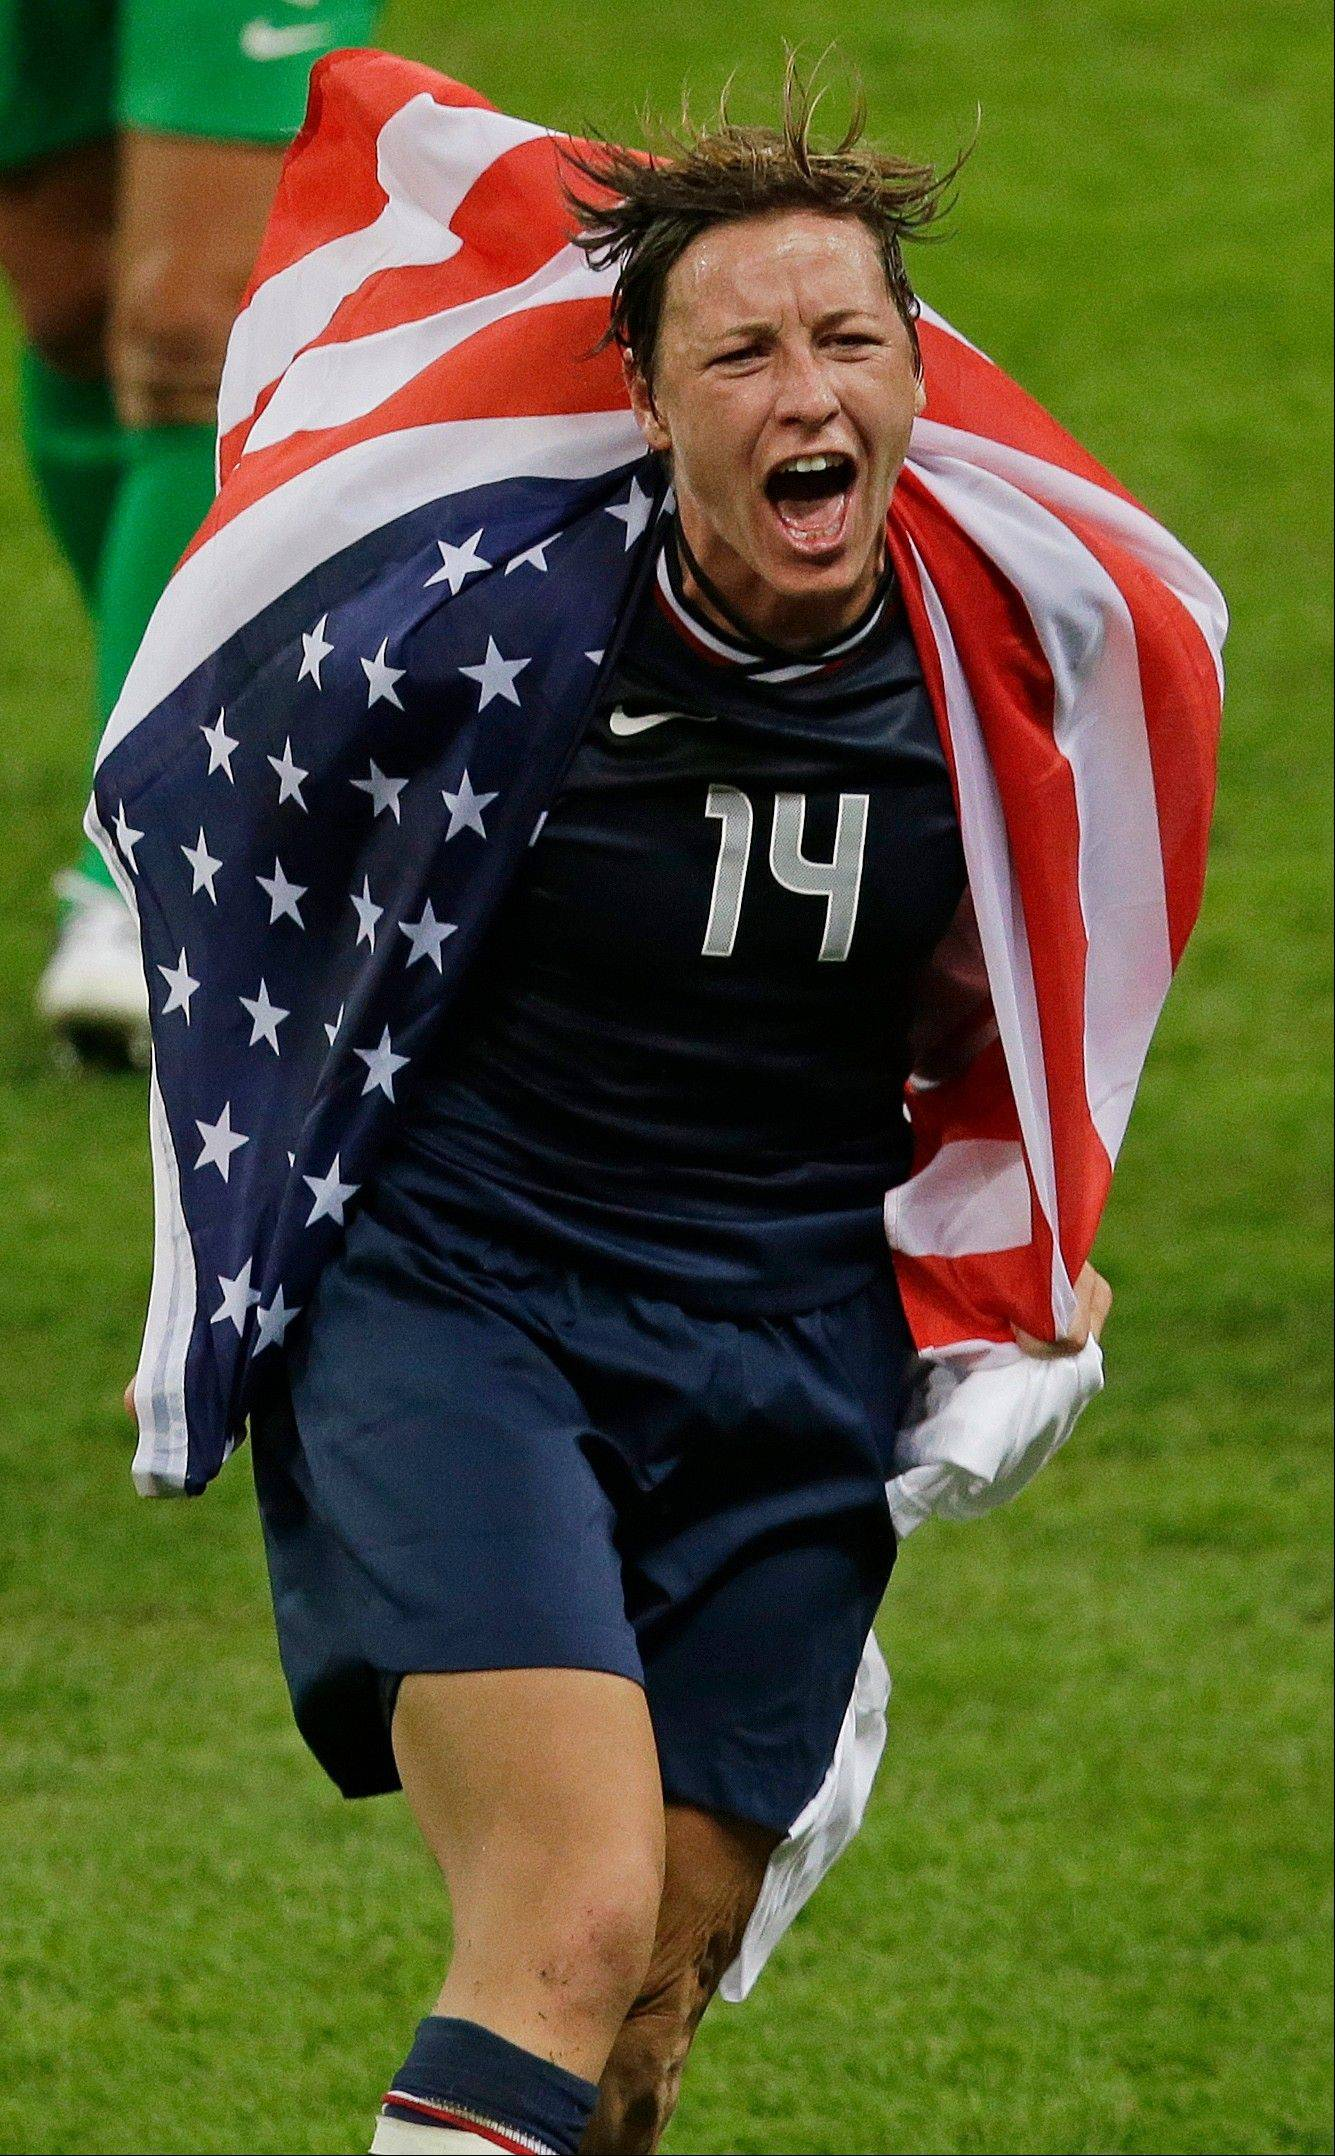 United States' Abby Wambach celebrates after winning the women's soccer gold medal match against Japan at the 2012 Summer Olympics, Thursday, Aug. 9, 2012, in London.